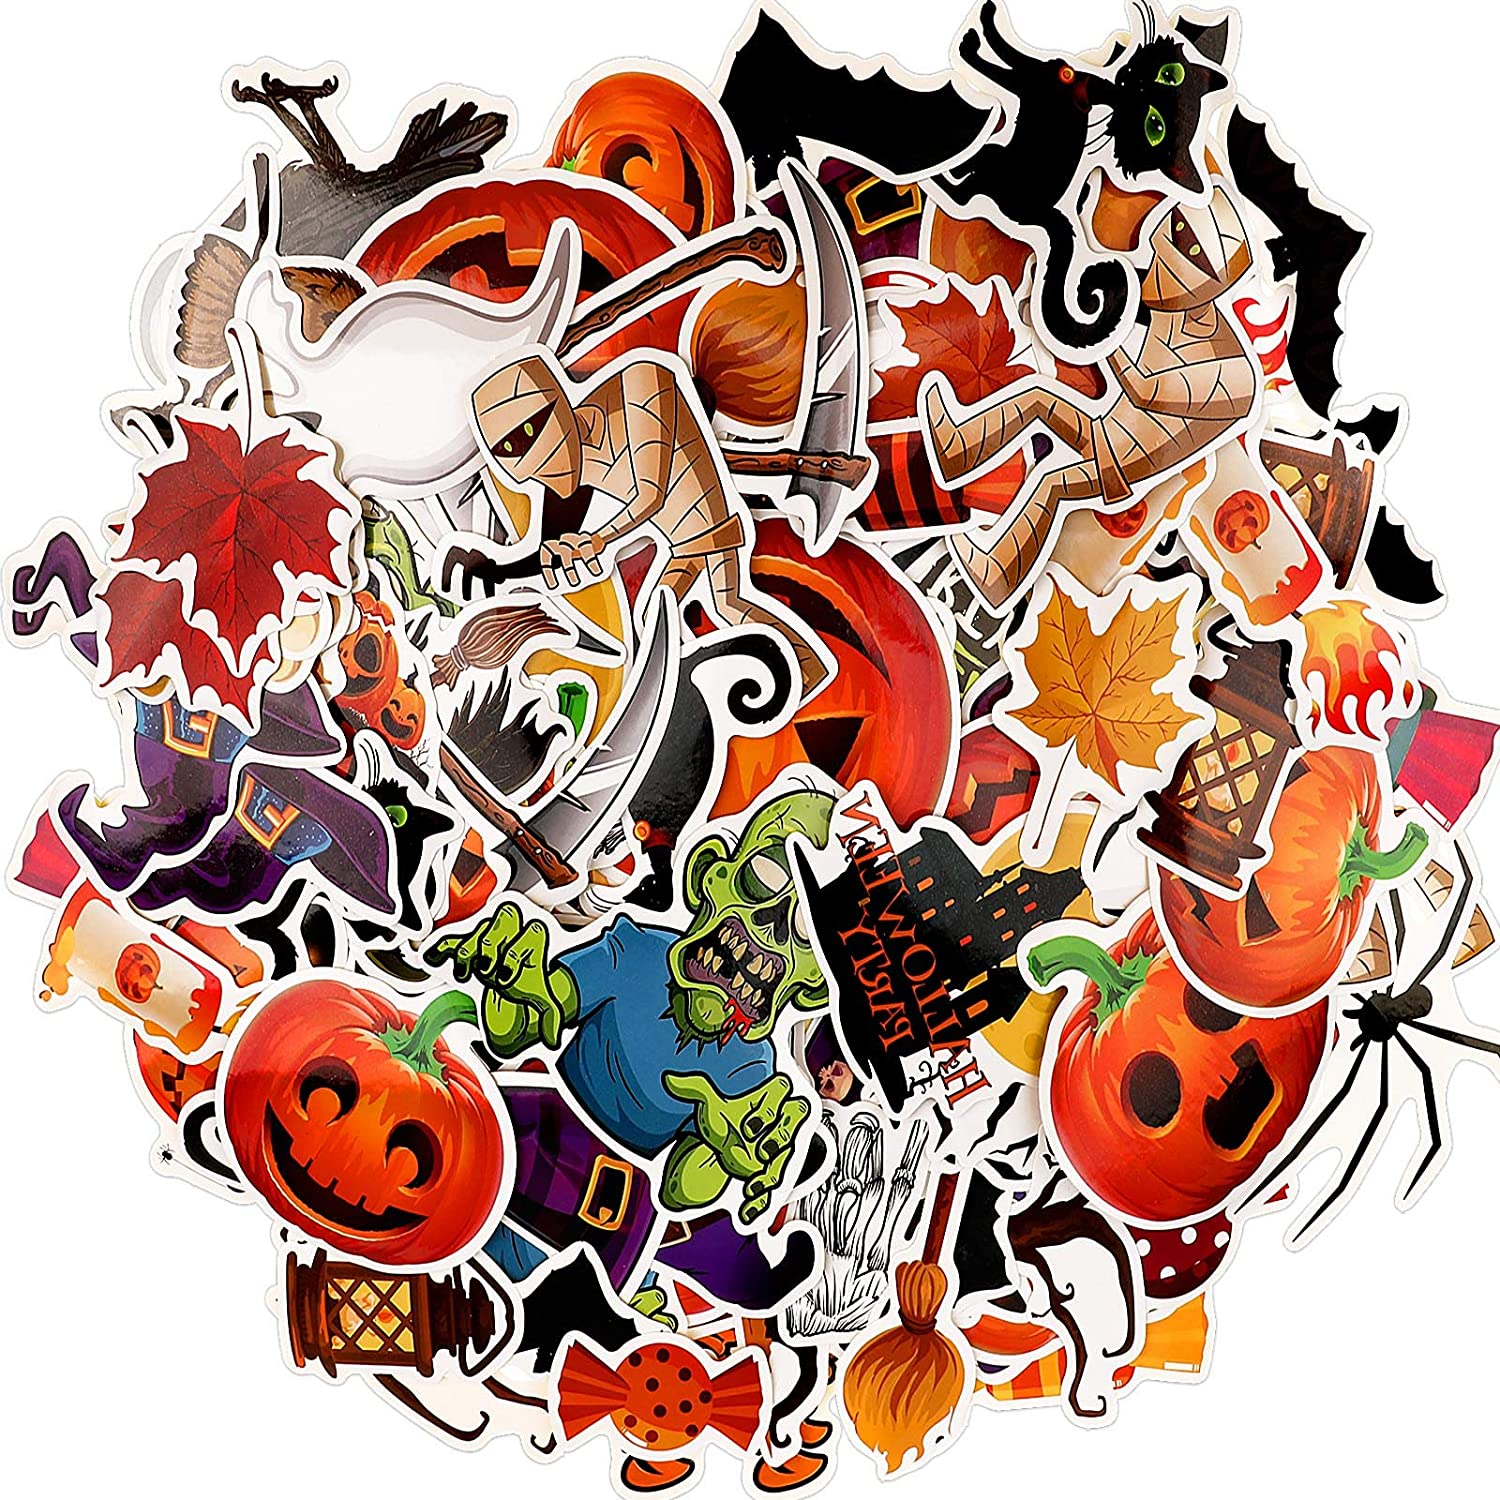 321 Pieces Halloween Stickers Vinyl Water Bottle Stickers Decal Halloween Theme Stickers for Laptop, Skateboard, Cake, Luggage and Bike